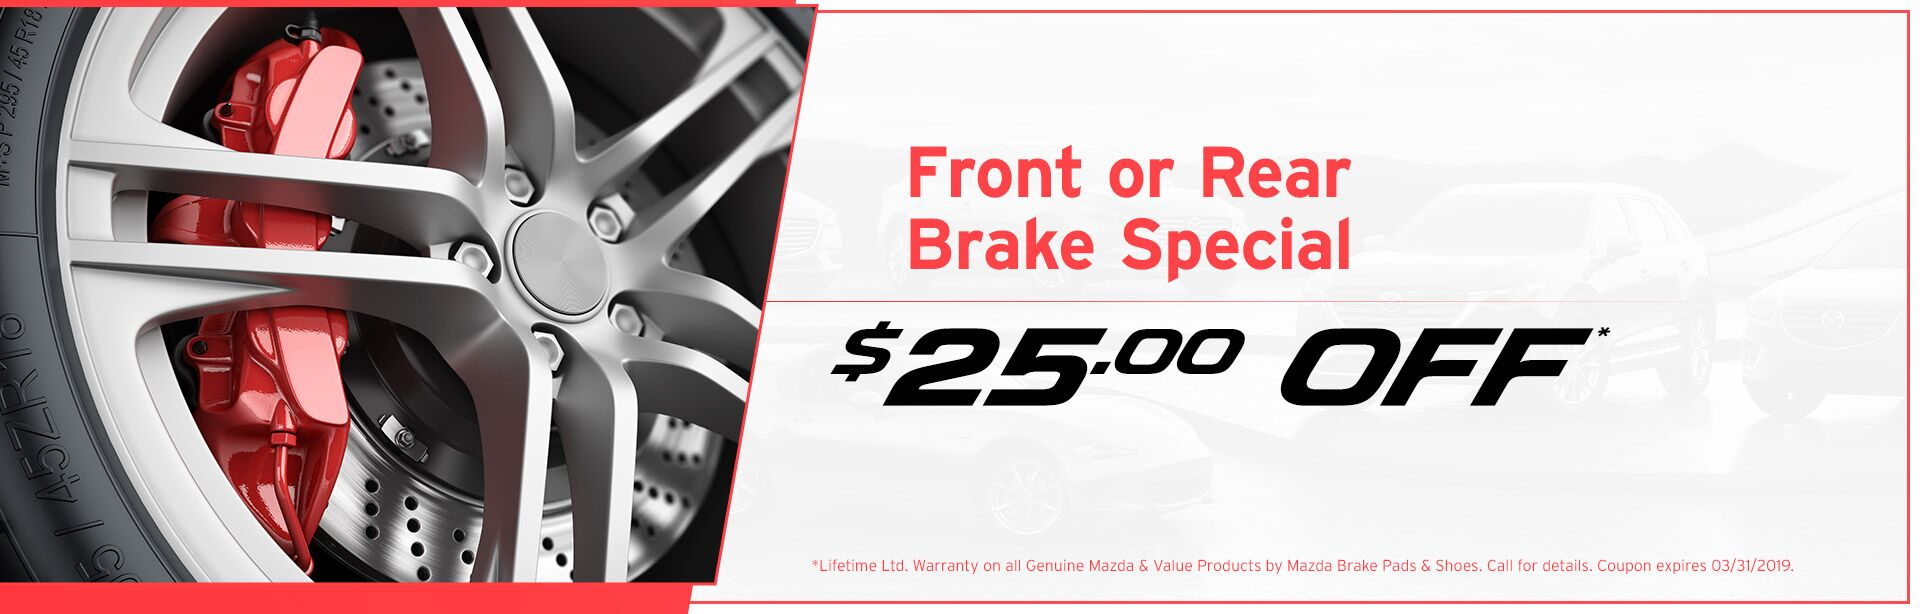 Front or Rear Brake Special